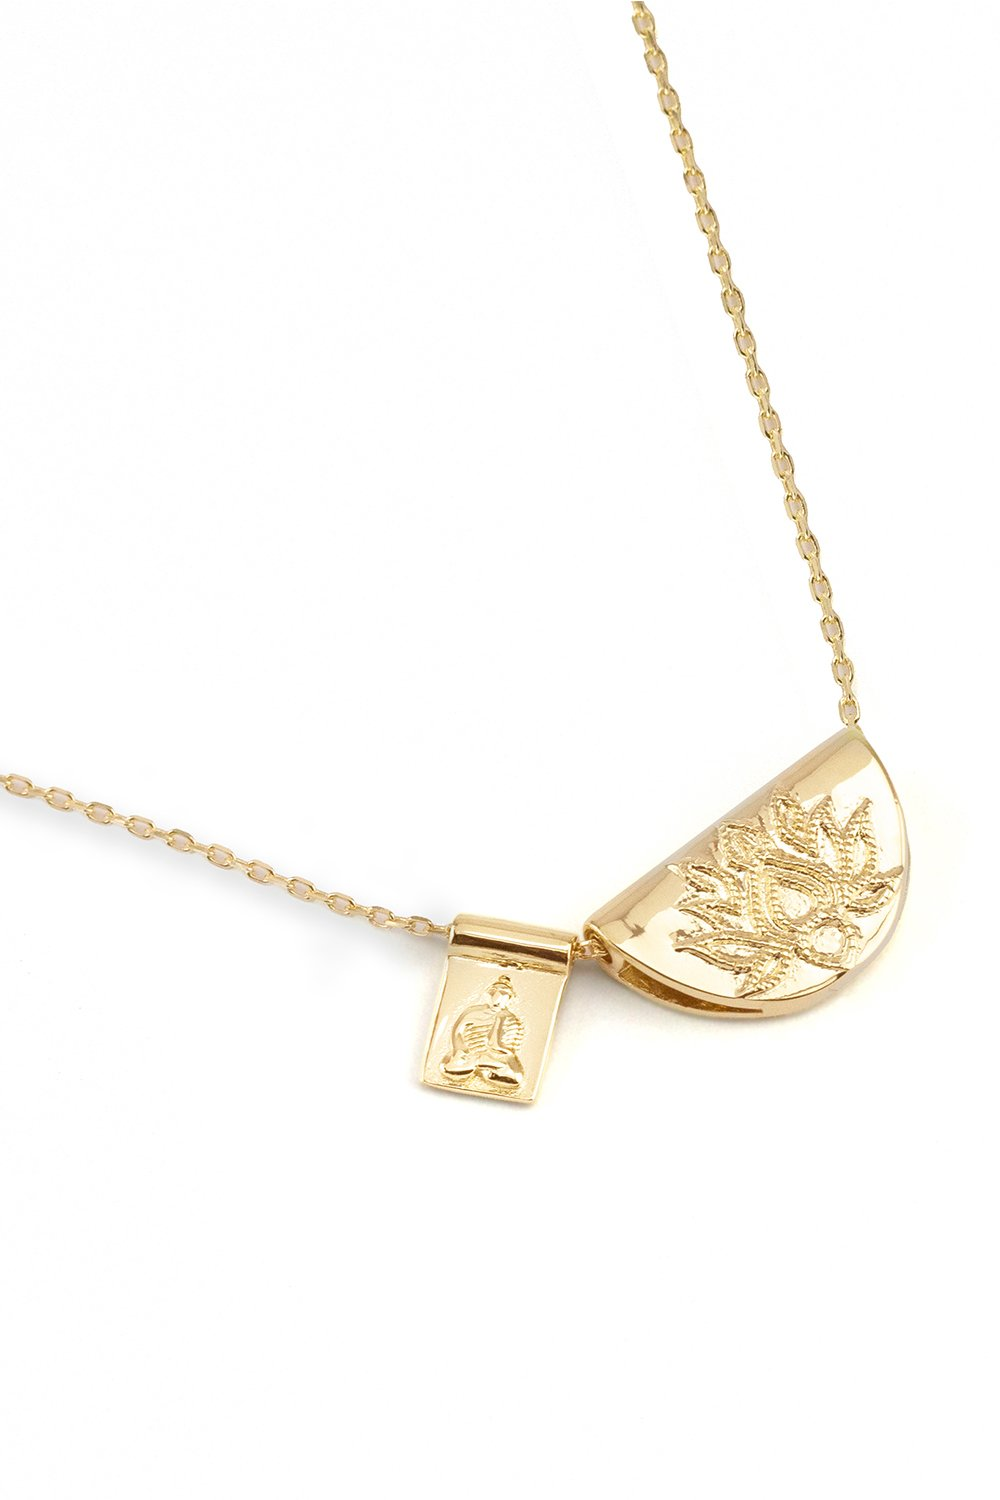 BY CHARLOTTE LOTUS SHORT NECKLACE GOLD